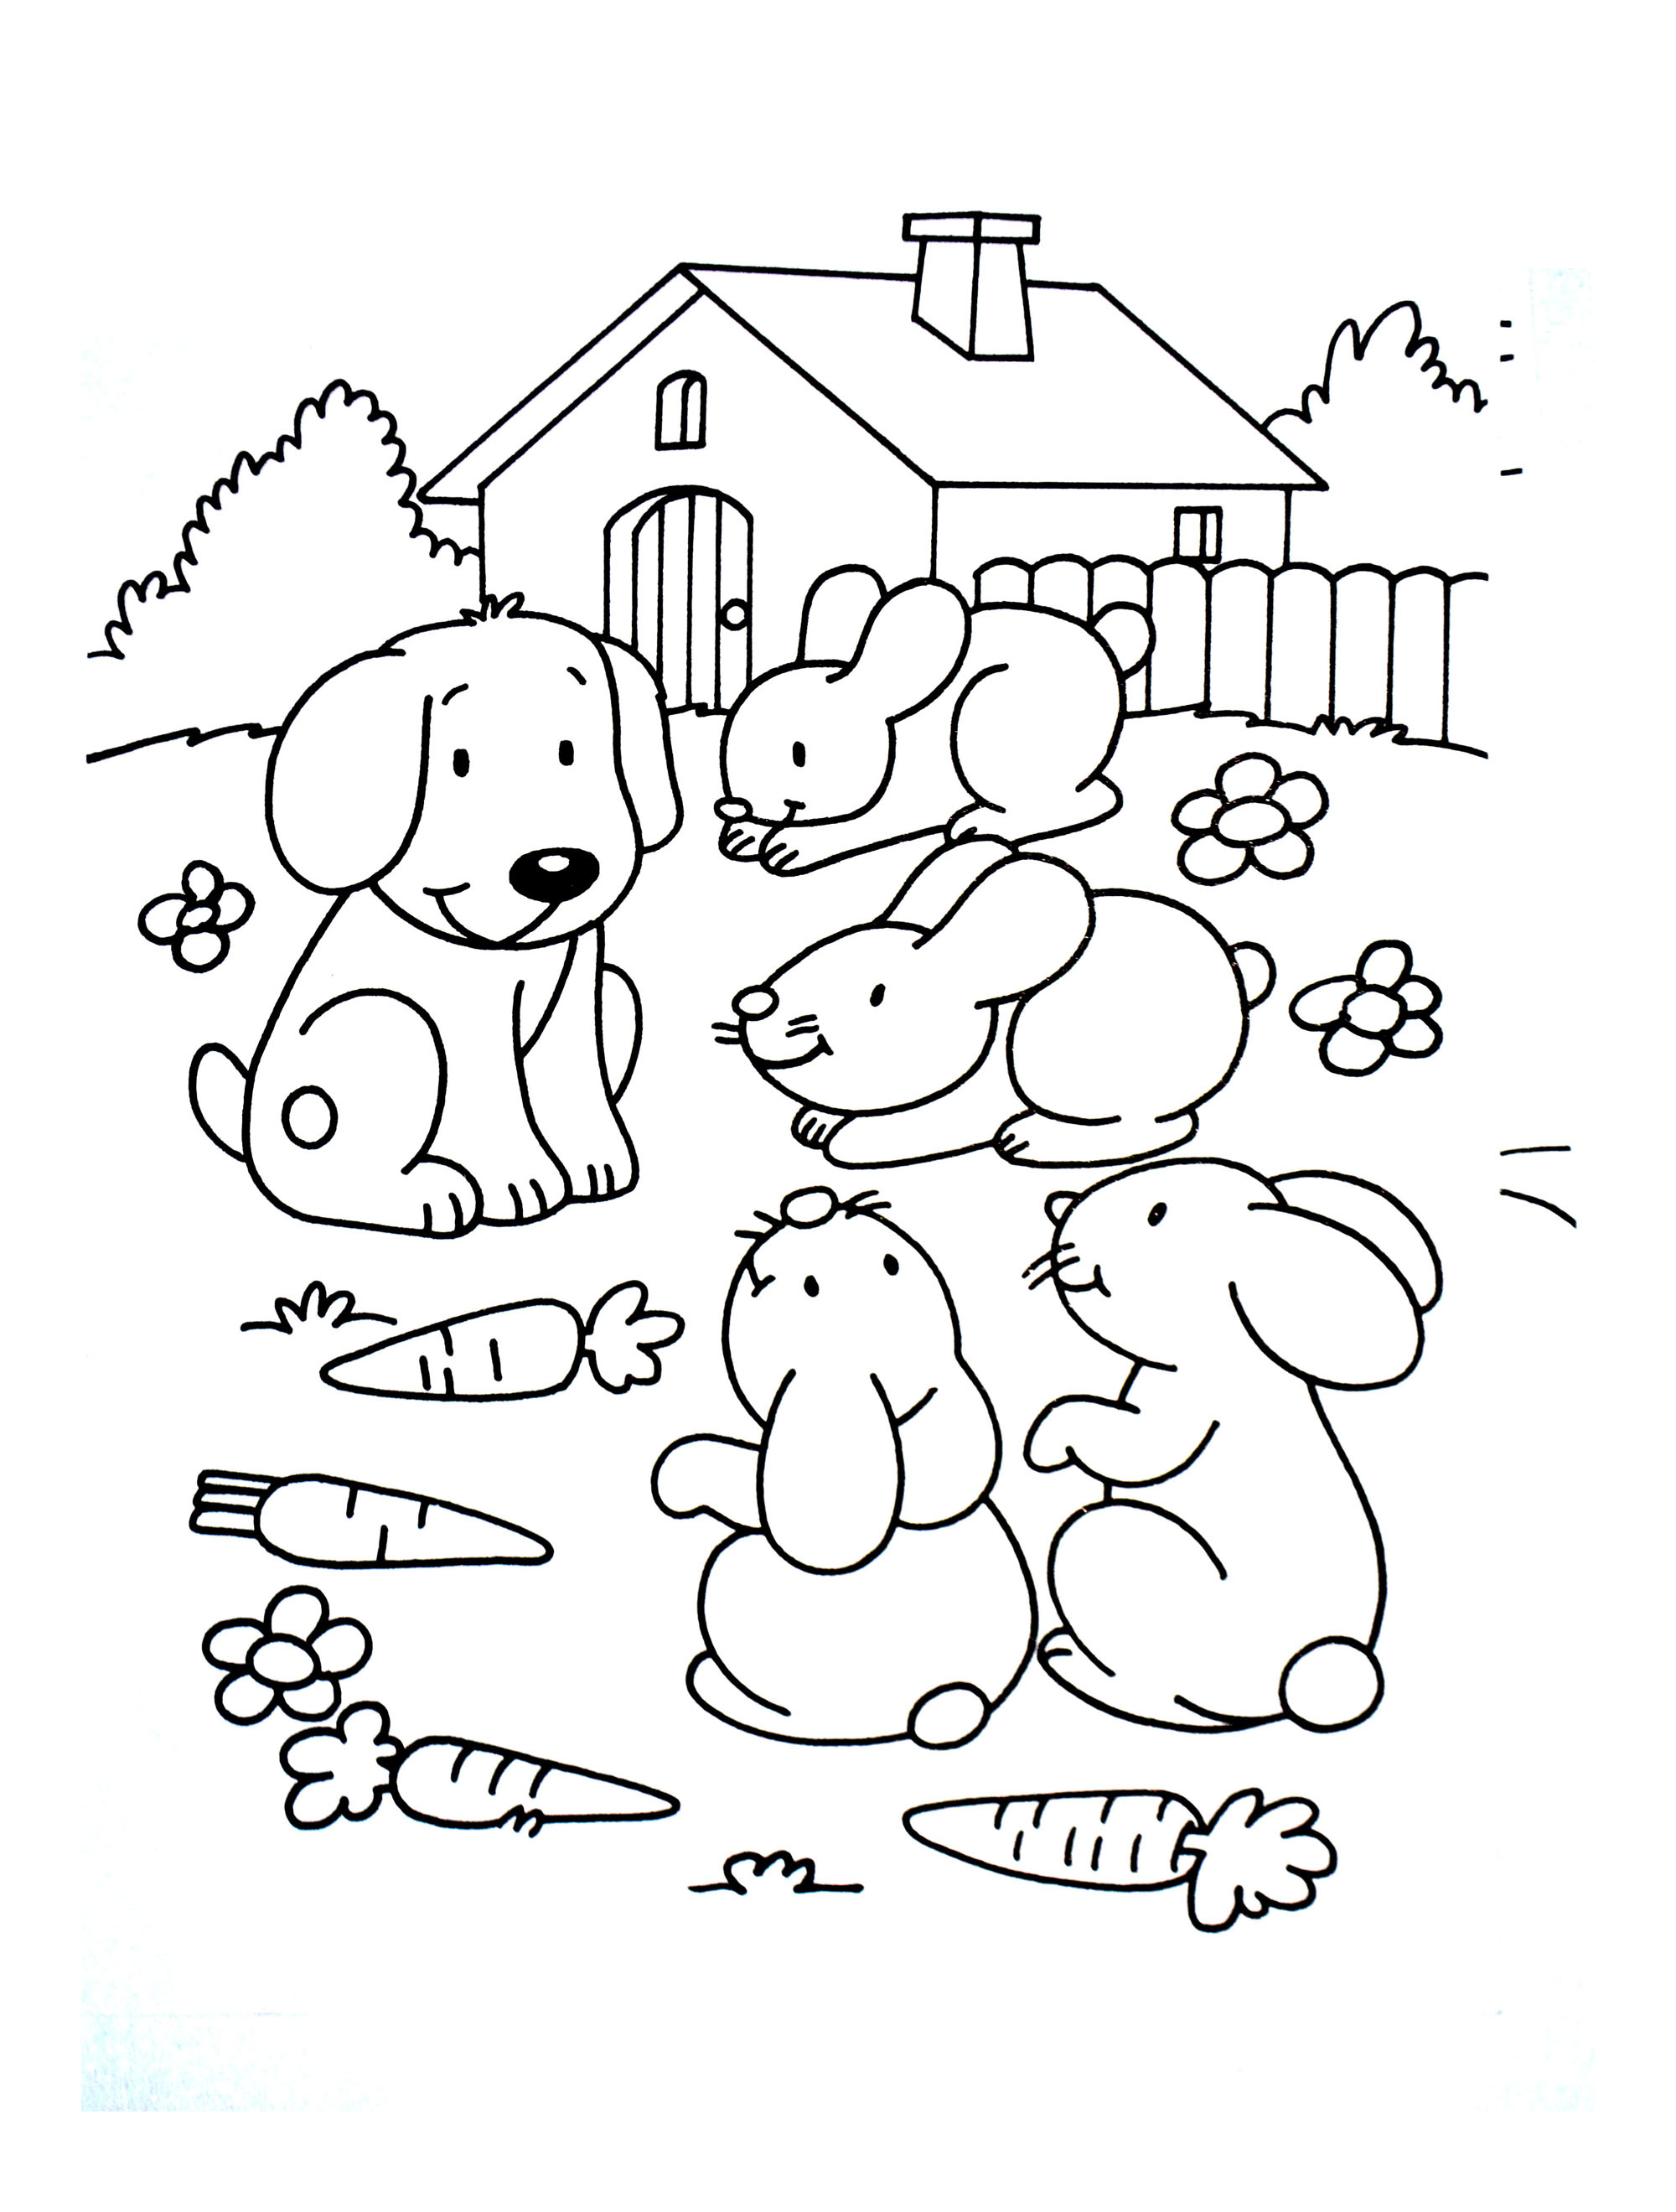 Simple Farm coloring page to print and color for free